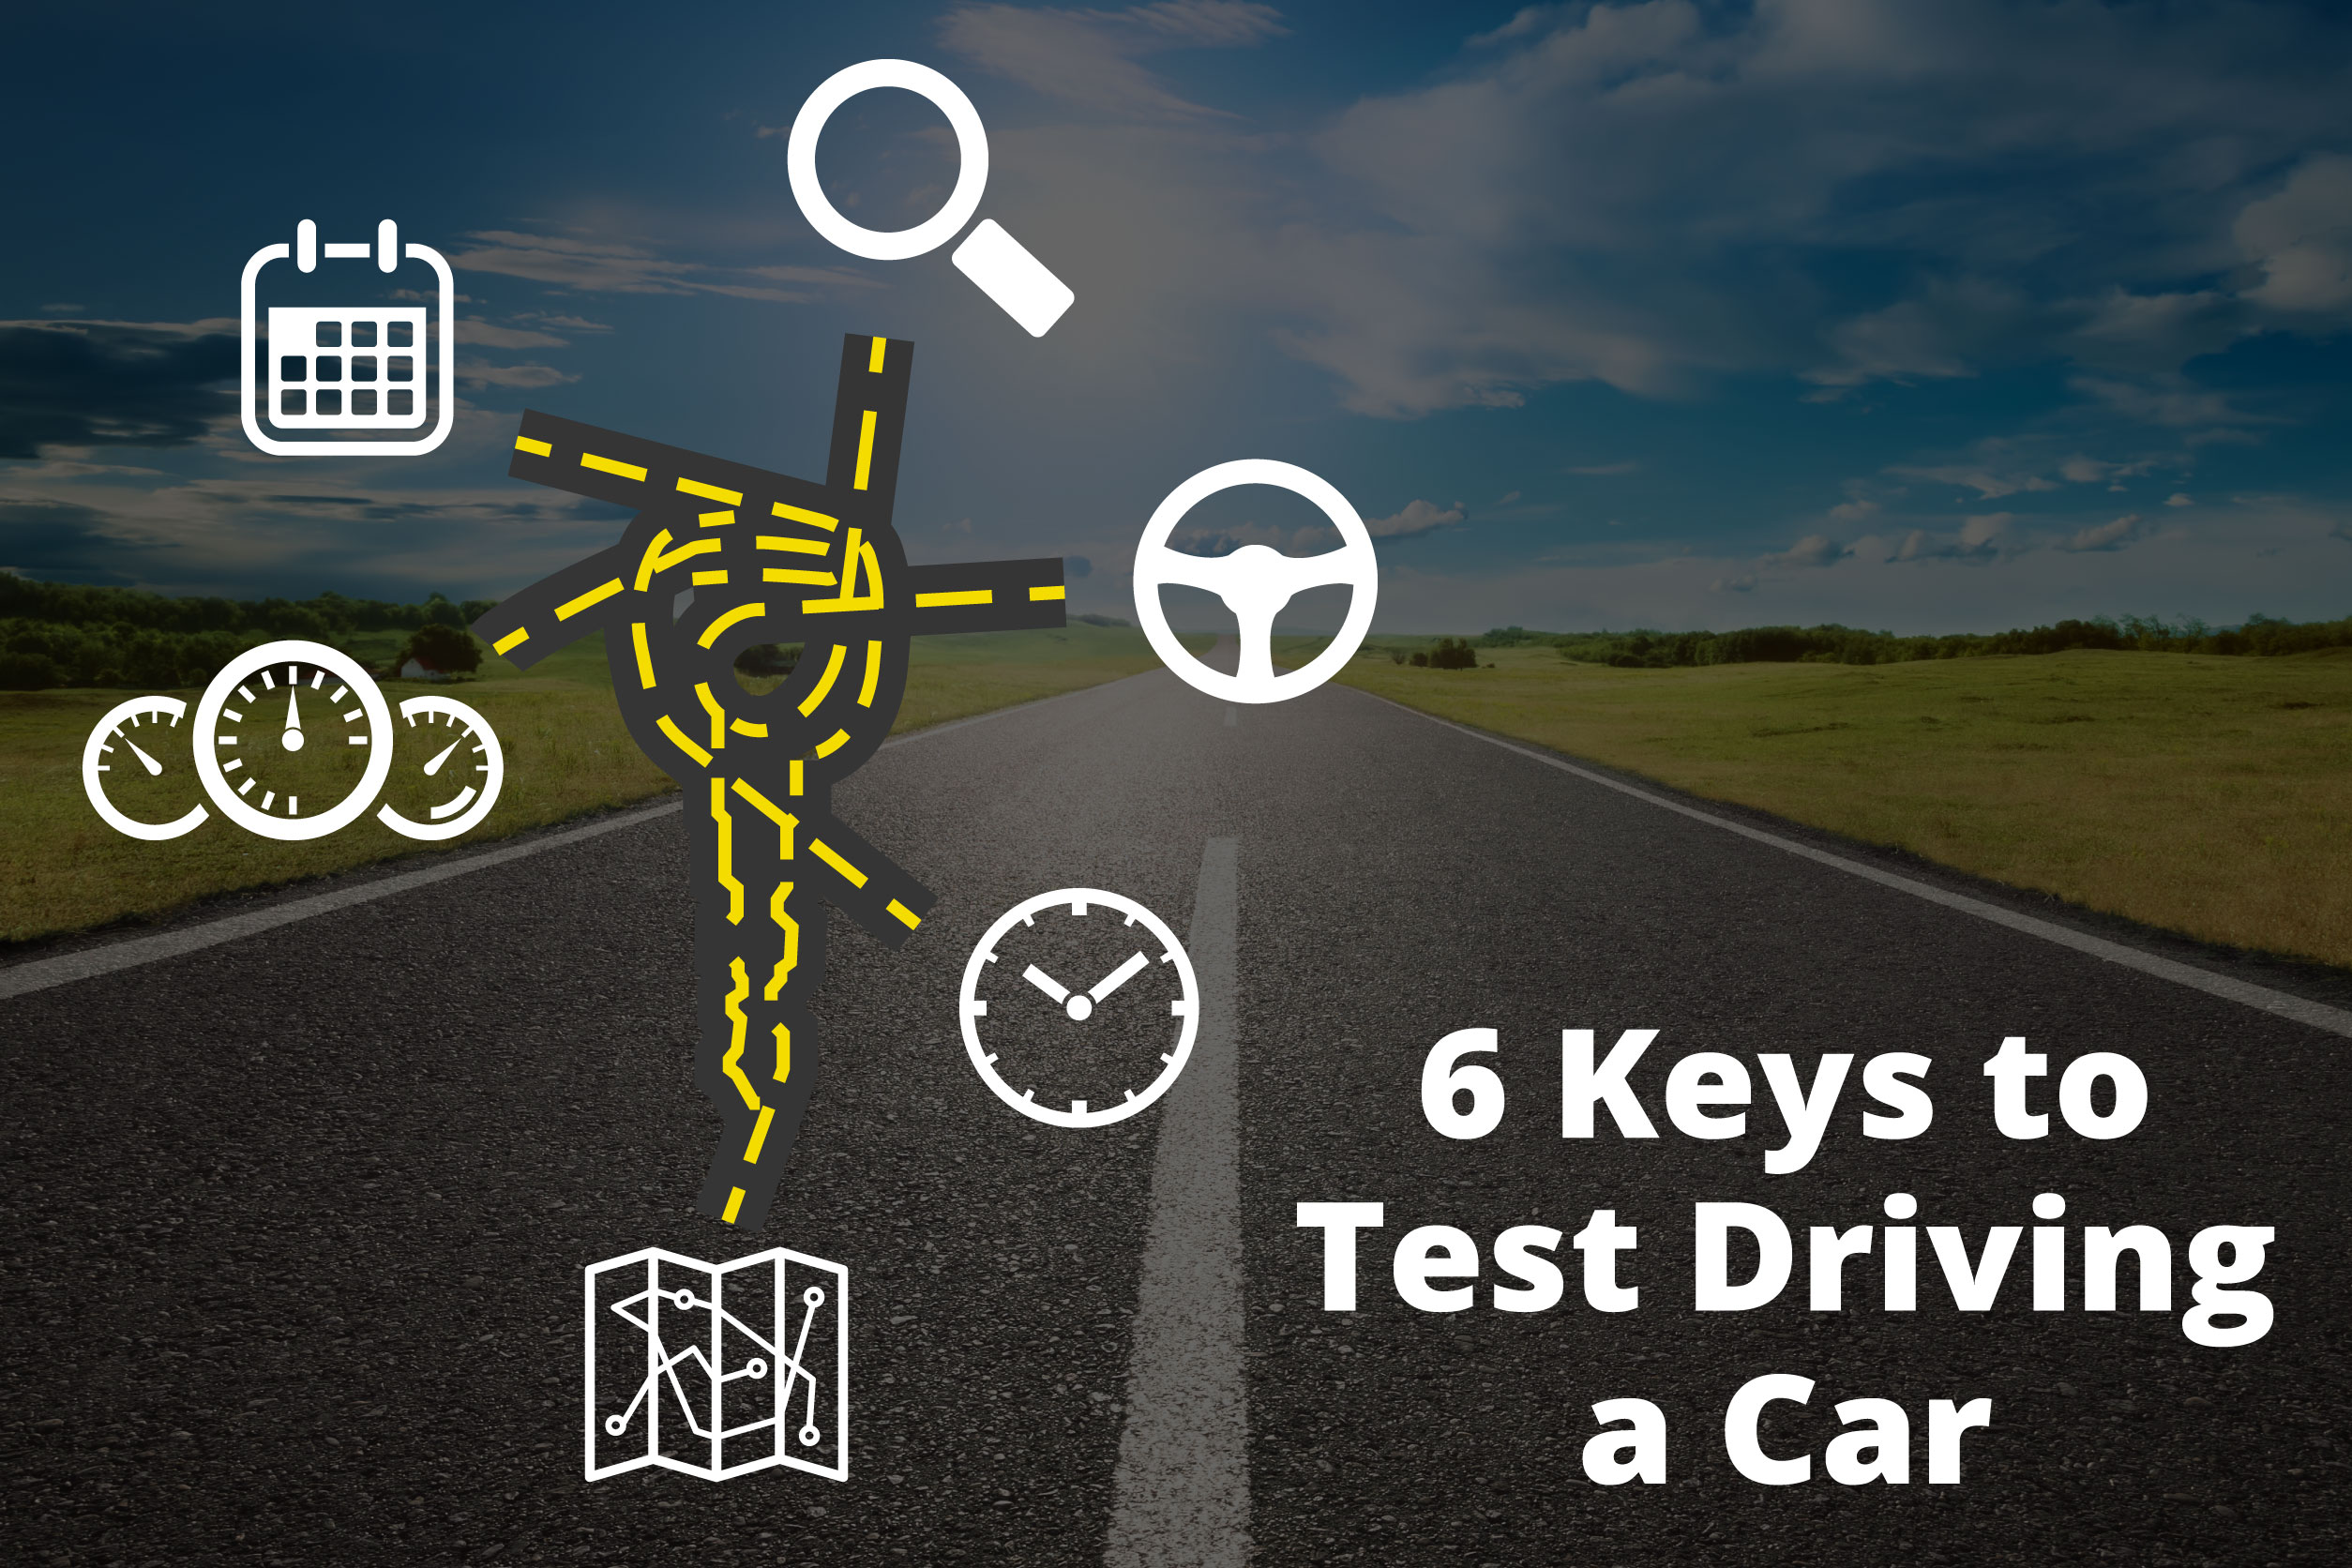 """A custom image of a road with the text """"6 Keys to Test Driving a Car"""""""